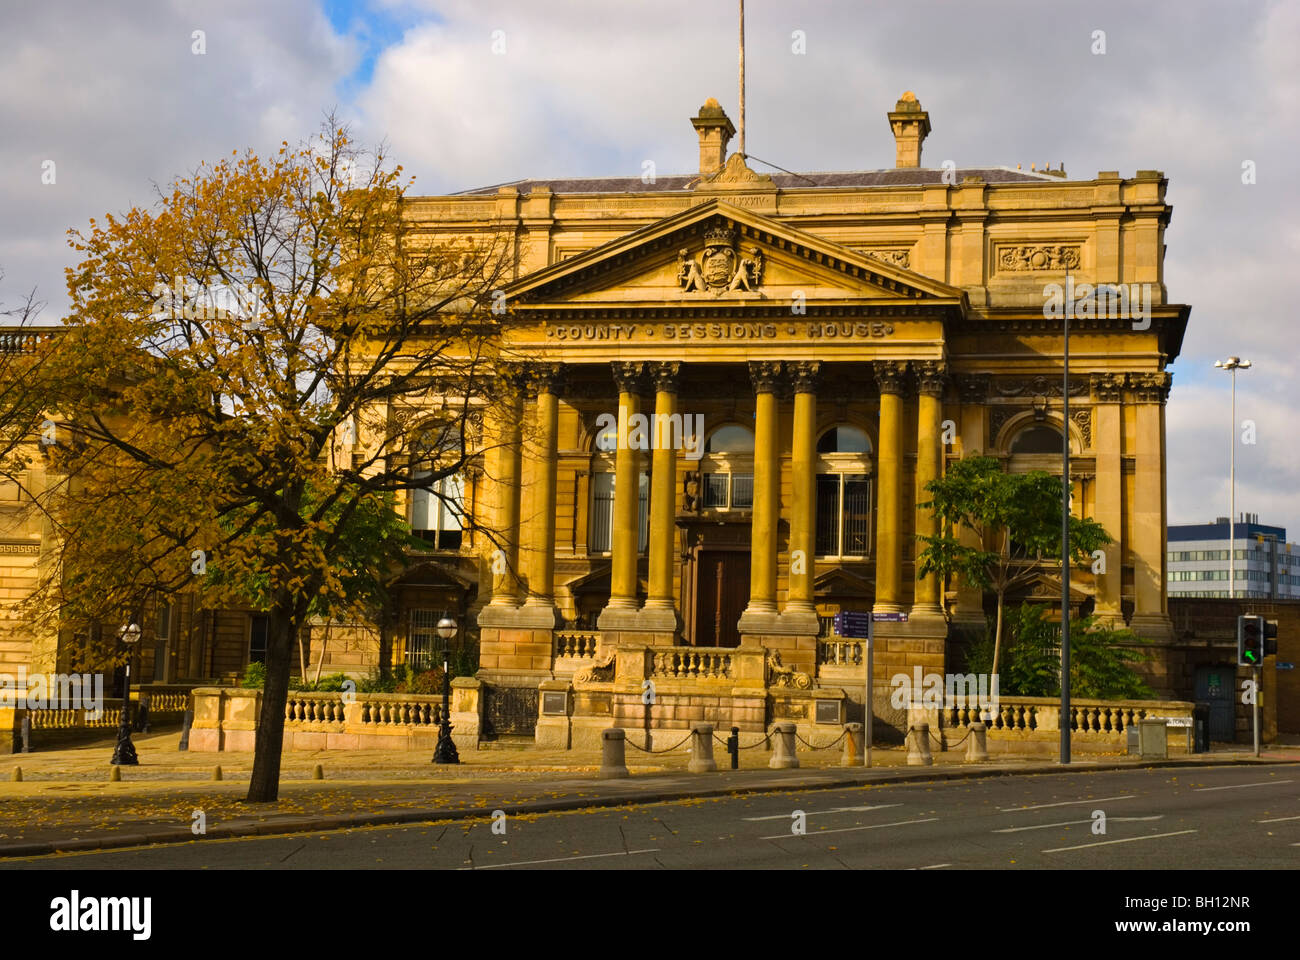 County sessions house central Liverpool England UK Europe - Stock Image